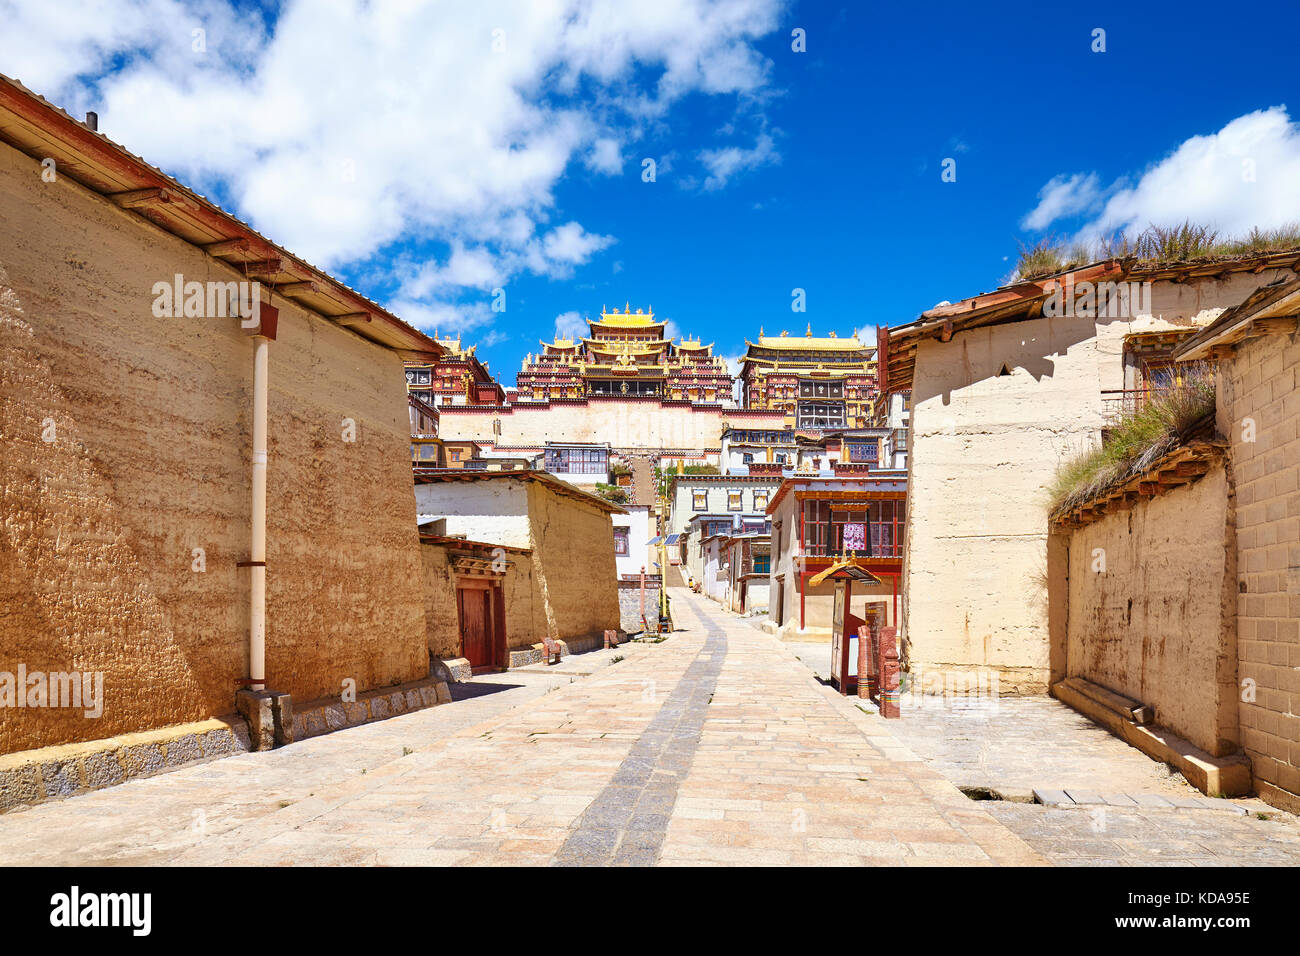 Street in Songzanlin Monastery, also known as Sungtseling, Ganden Sumtsenling or Little Potala Palace, Yunnan, China. - Stock Image